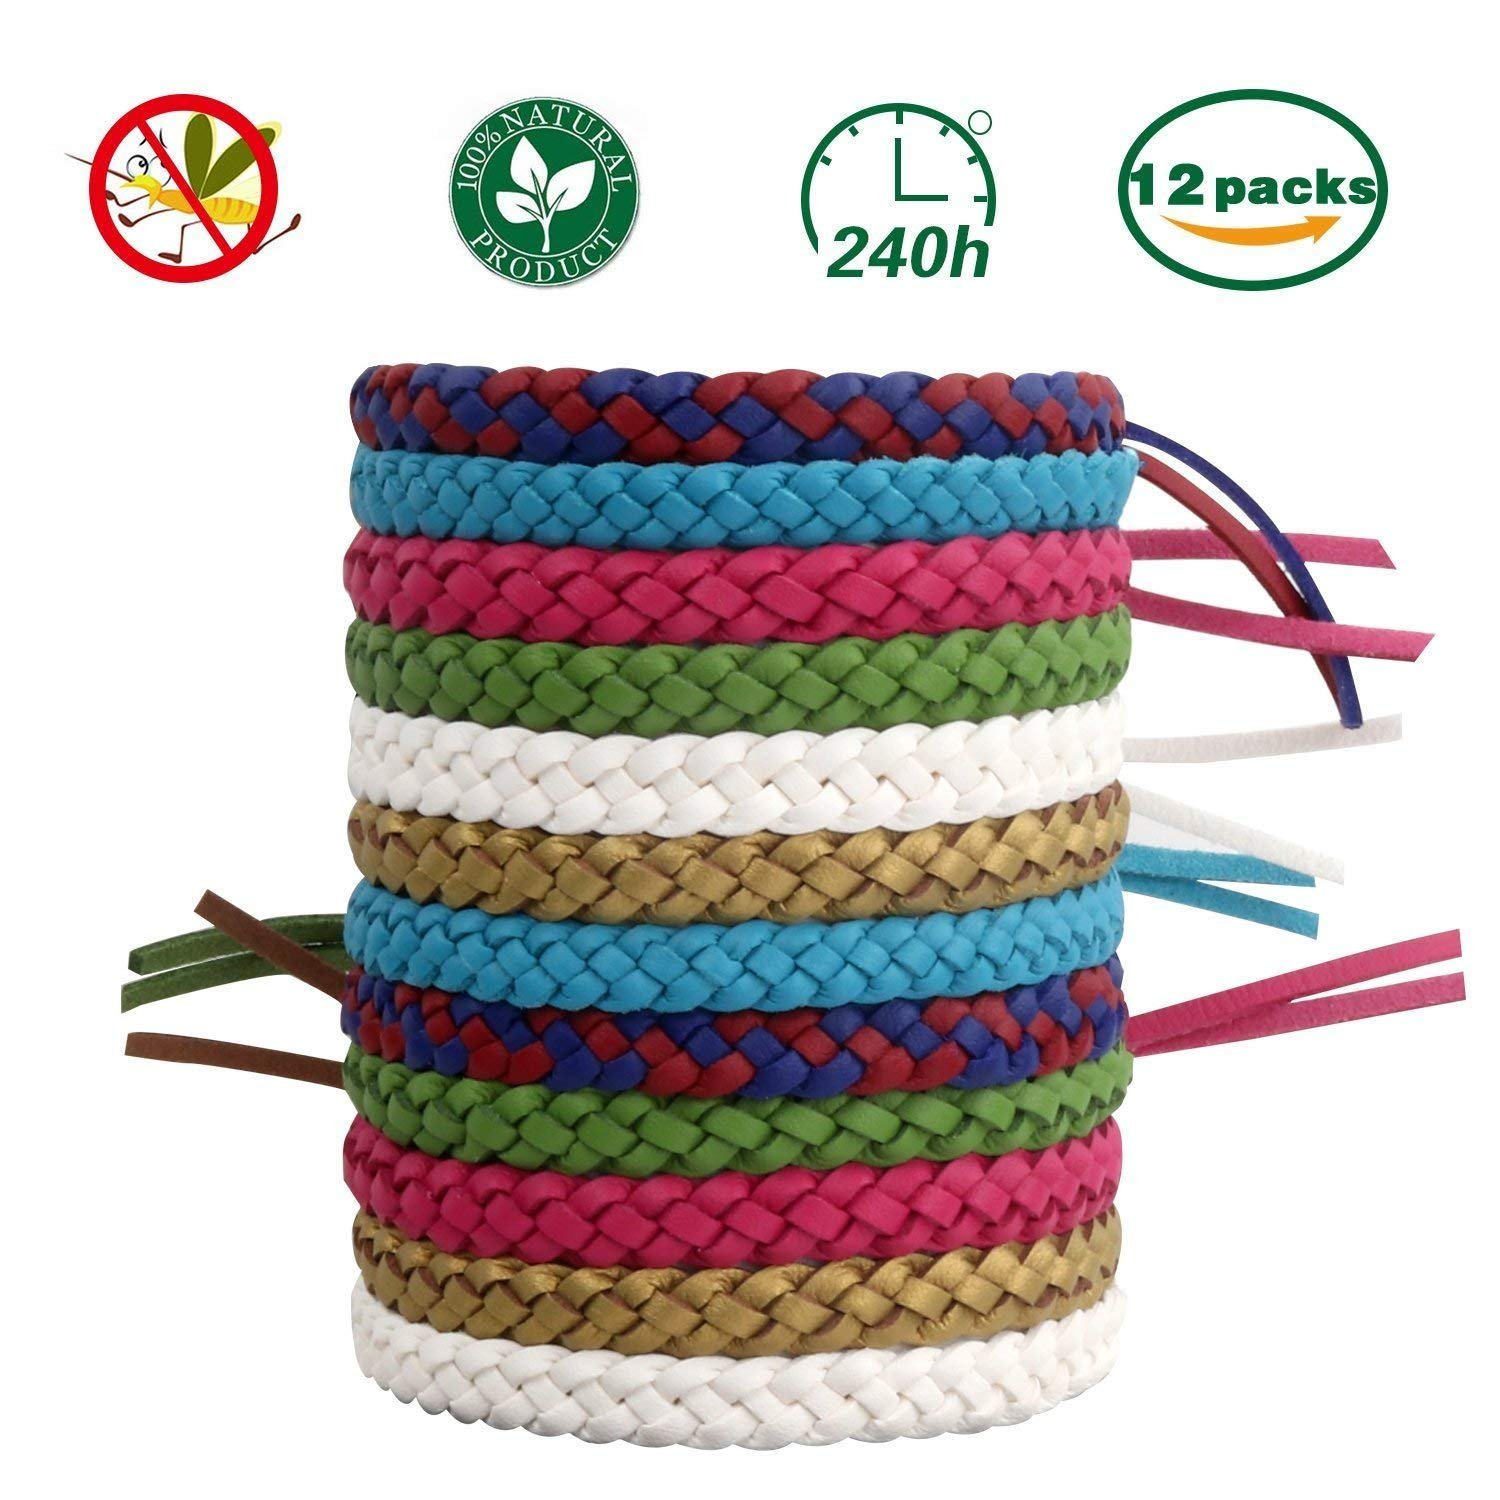 CXKB Mosquito Repellent Bracelet, Leather Mosquito Braided Bracelet, 100% Natural, Adjustable, Waterproof, Suitable for Children, Adults and Pets Camping, Barbecue, Travel - 12 Colors.